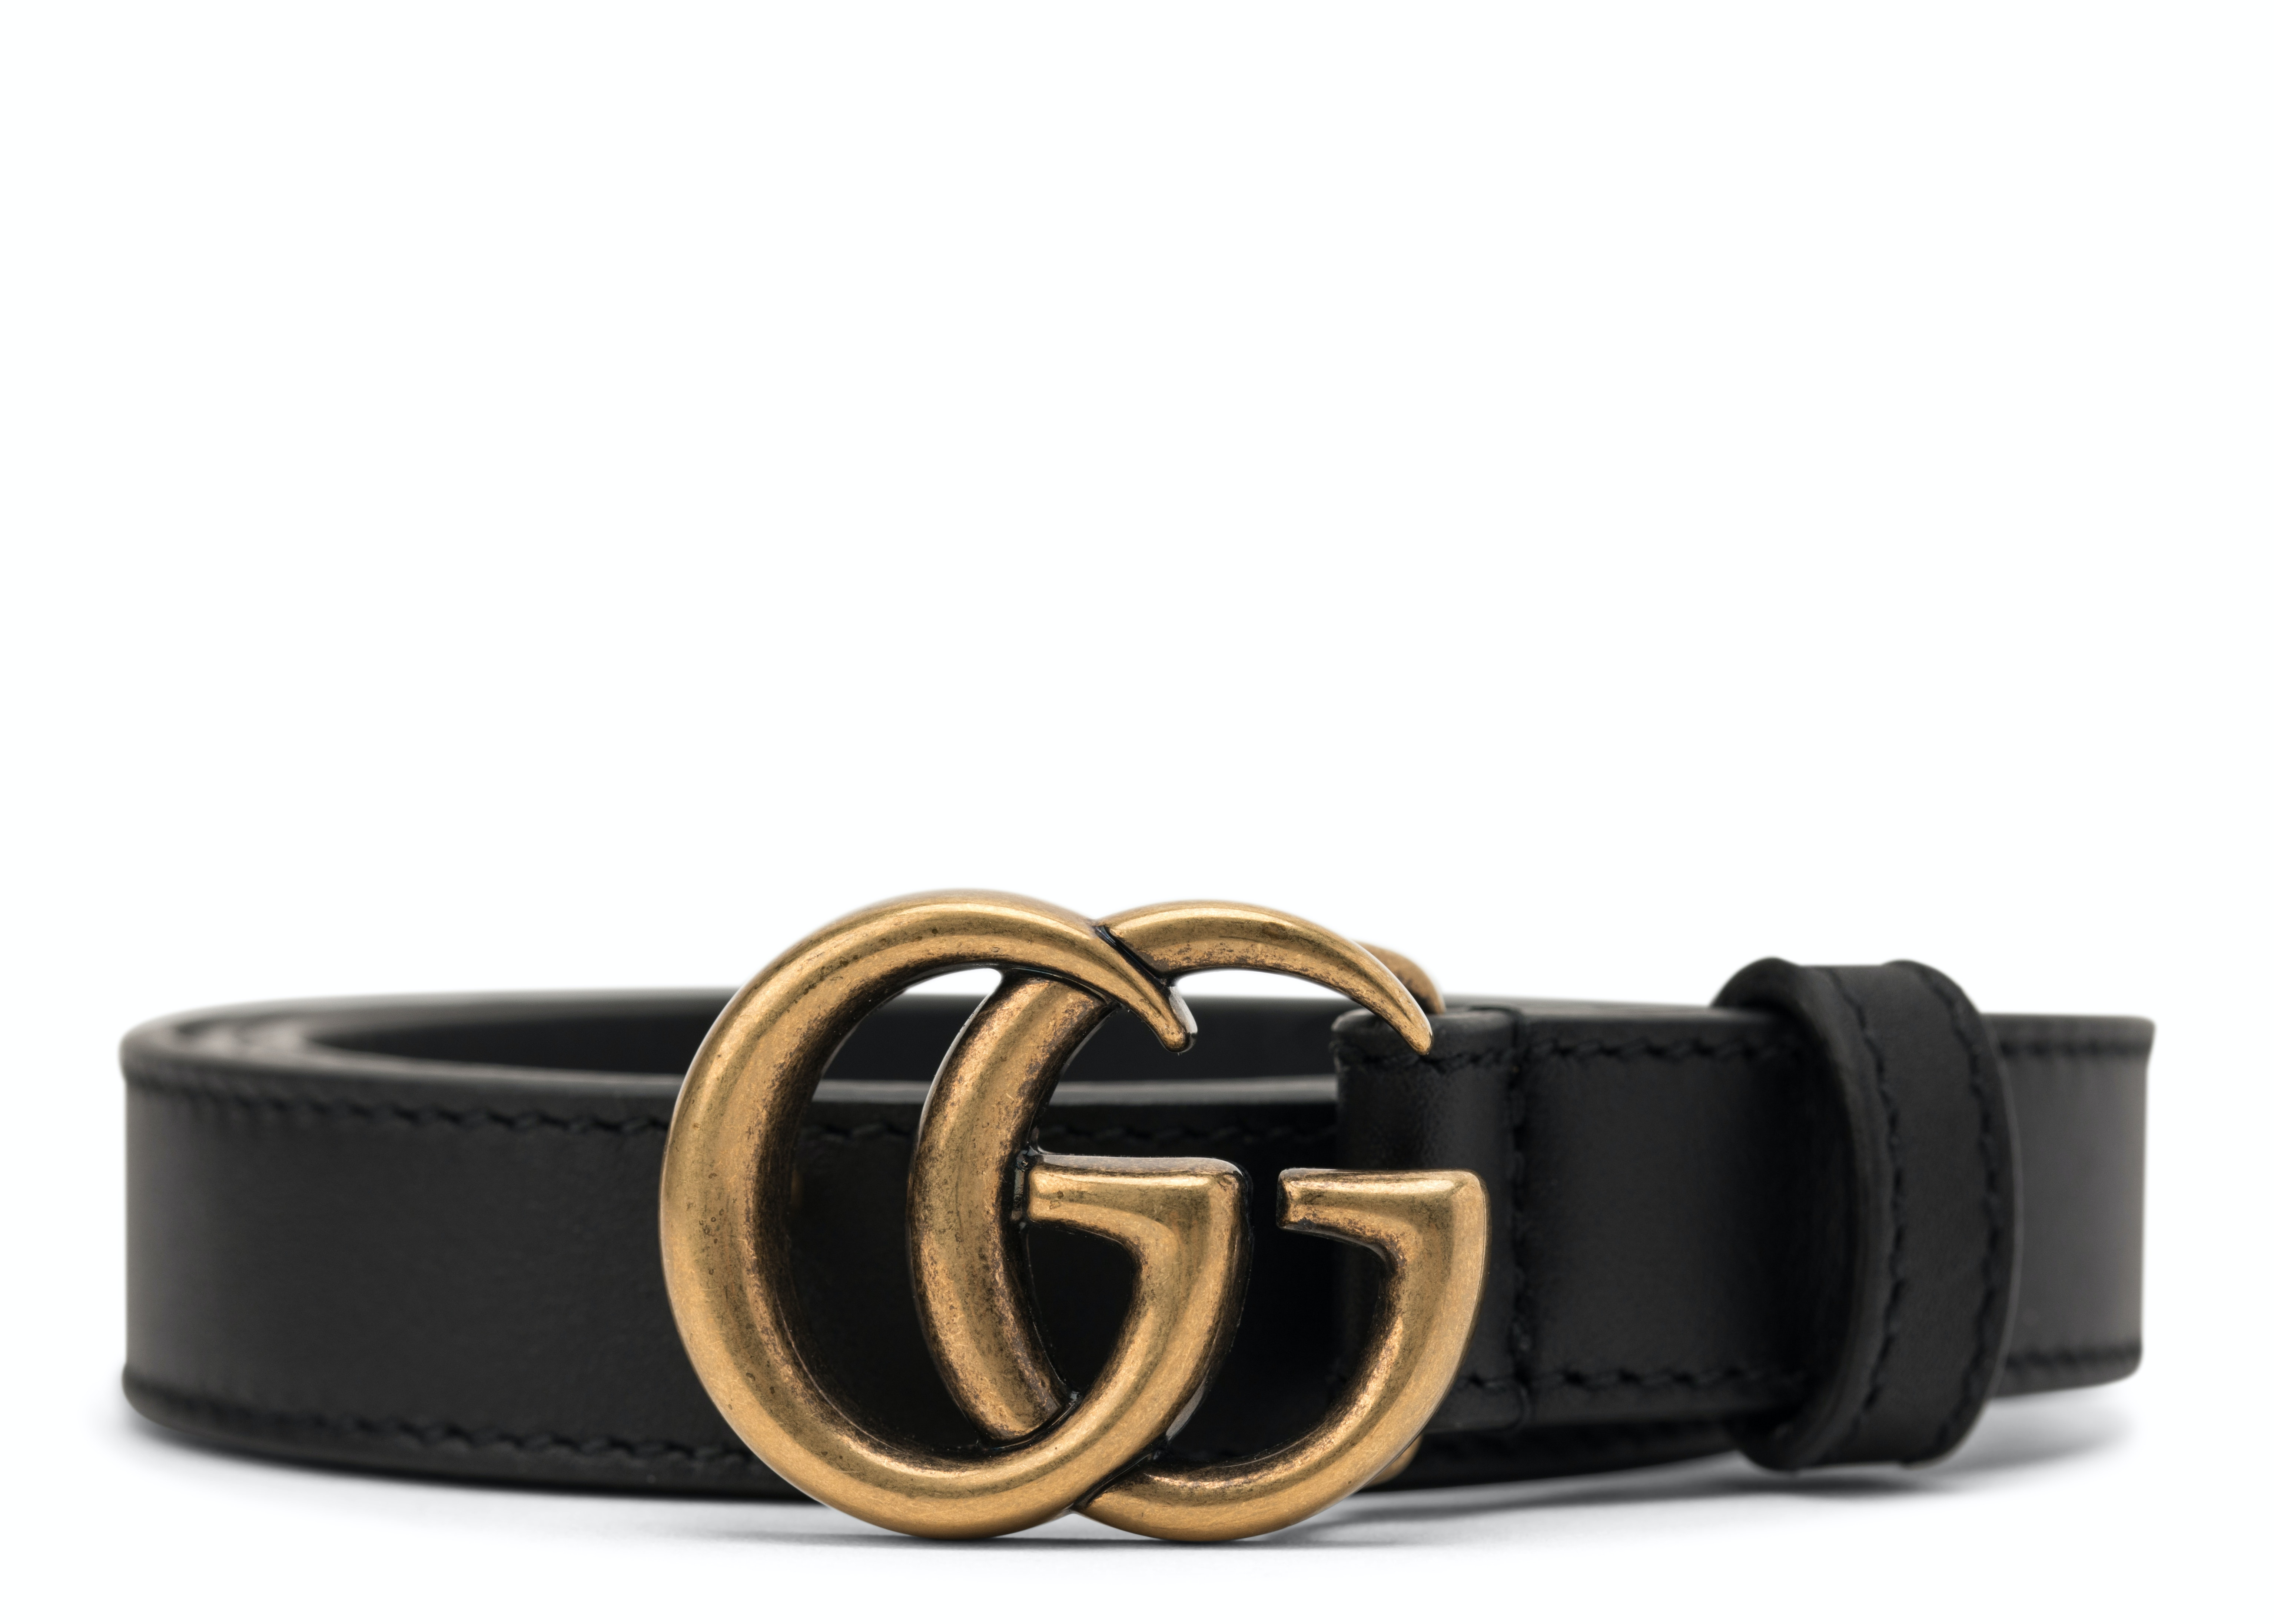 Gucci Double G Buckle Leather Belt 1.5 Width 80-32 Black